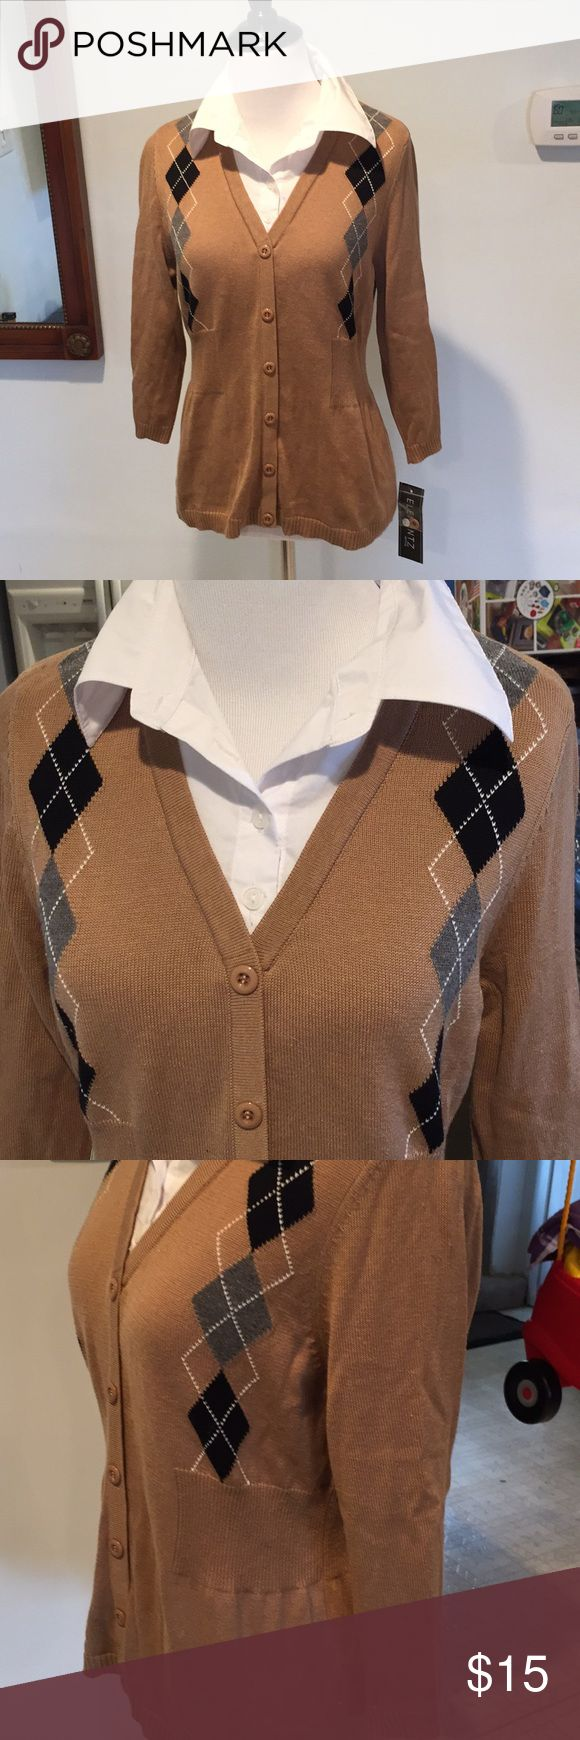 Preppy Career Top NWT Preppy Career Top. Beige Button Down Cardigan with Sewn In white button down shirt. Side and back sweater panels define waist. Easy work top! Elementz Tops